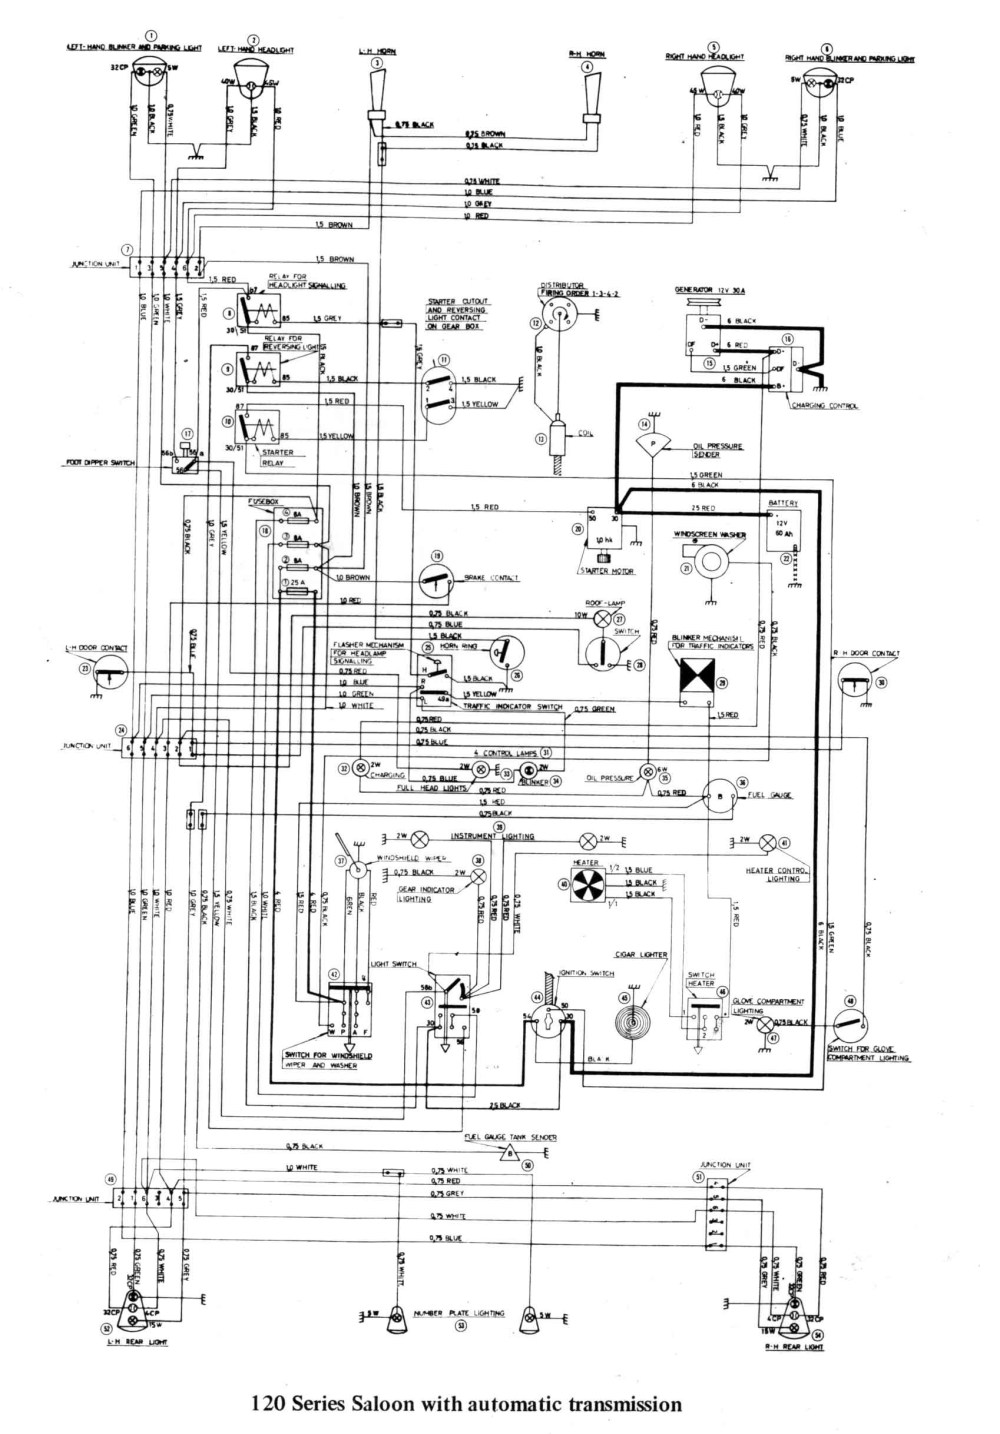 medium resolution of 2005 volvo s40 engine diagram volvo wiring diagrams diagram rh diagramchartwiki volvo s40 engine partment diagram 2006 vw jetta